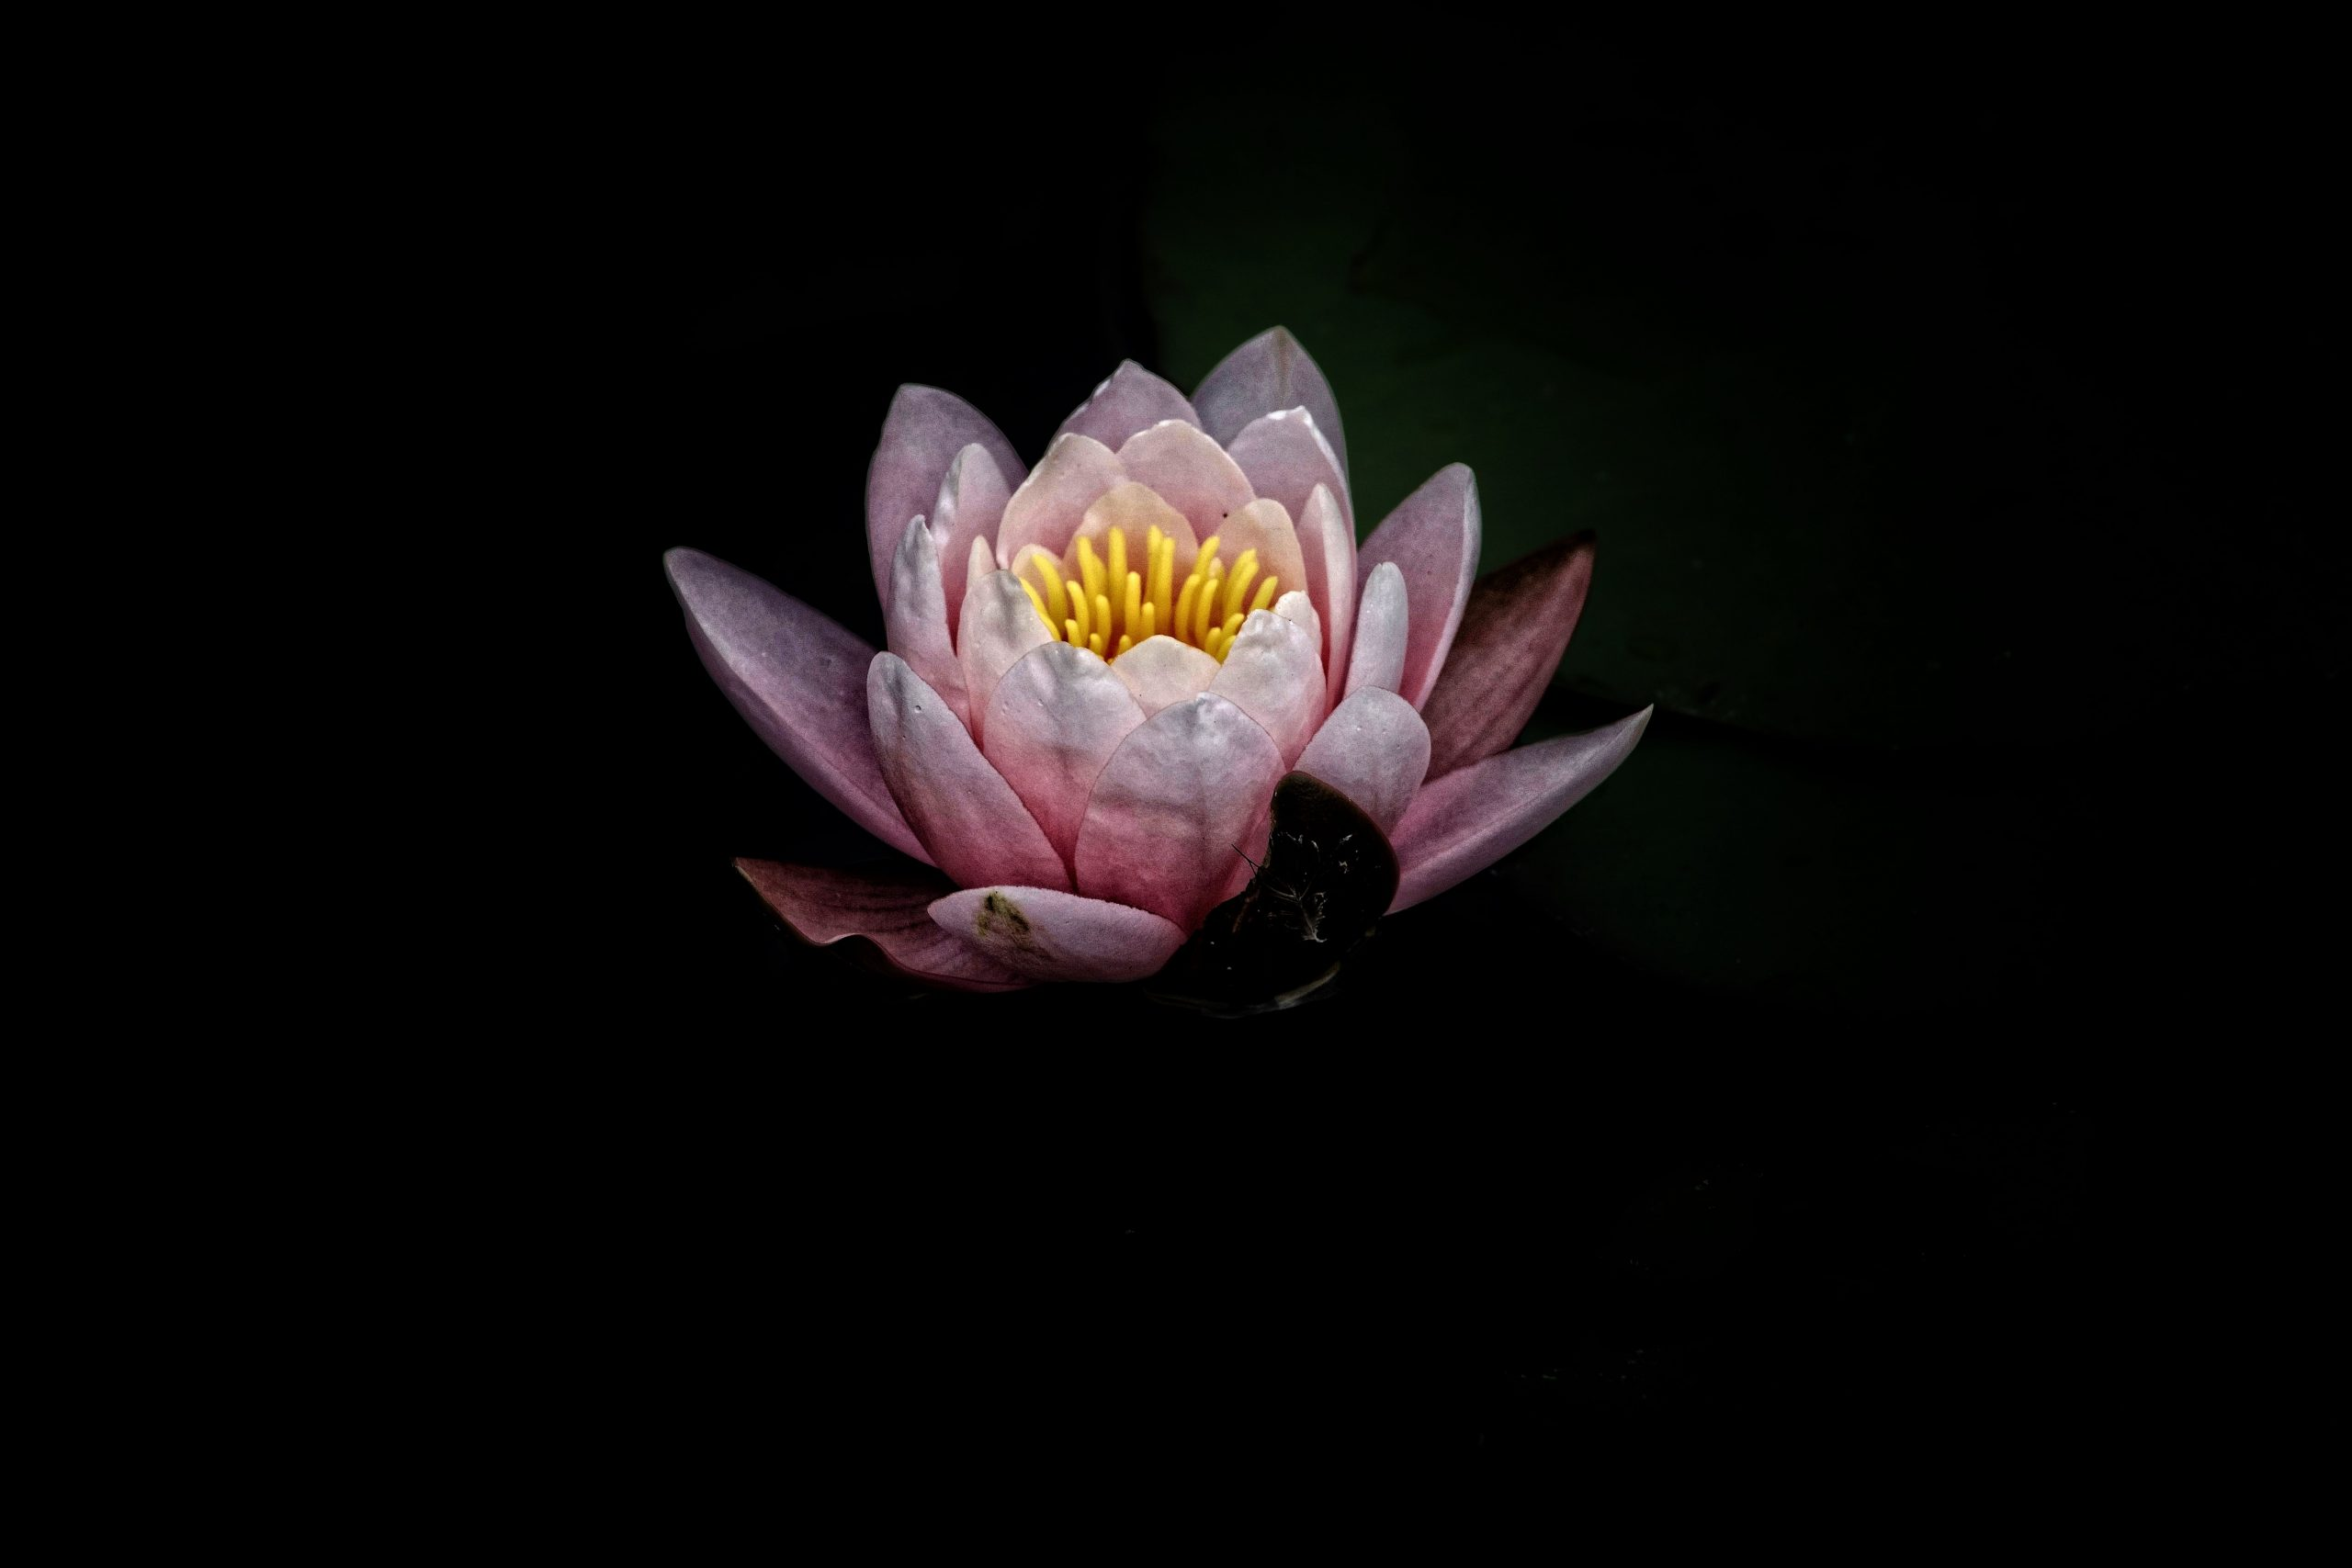 Image of pink lotus flower against a black background.